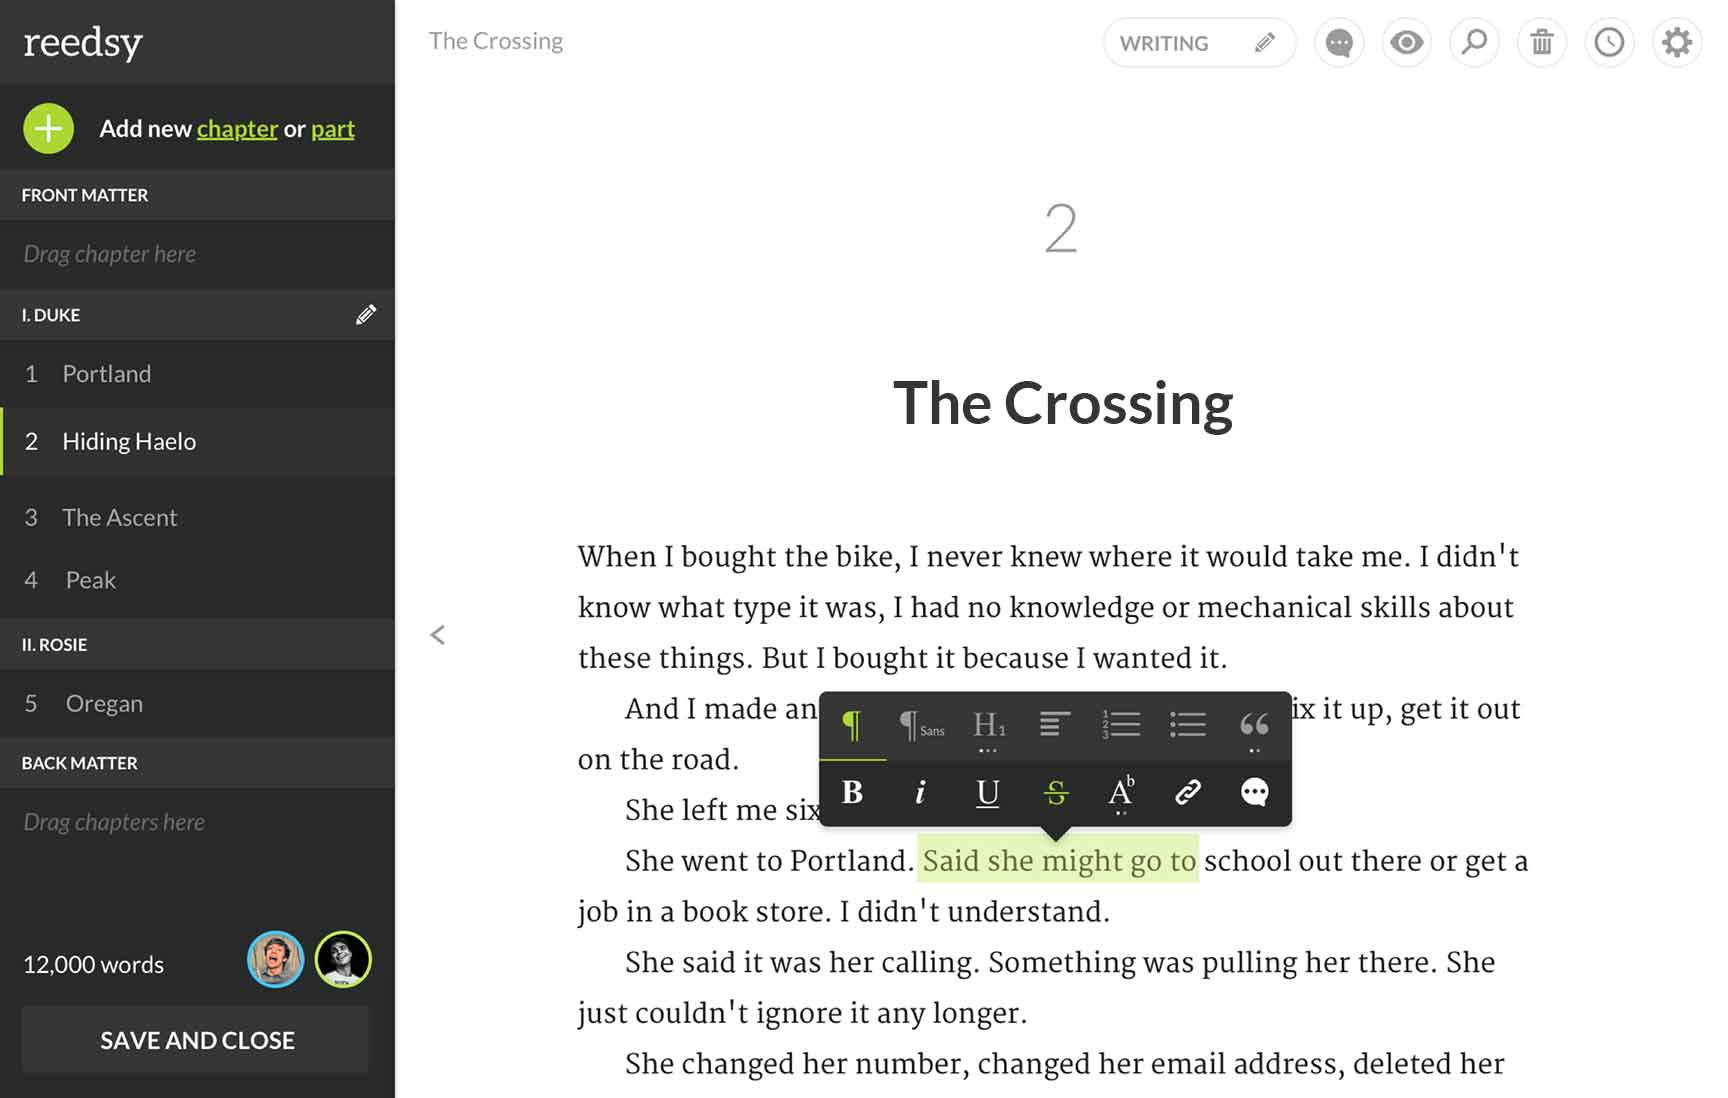 The Reedsy theme, a professionally typeset print template available in the Reedsy book editor